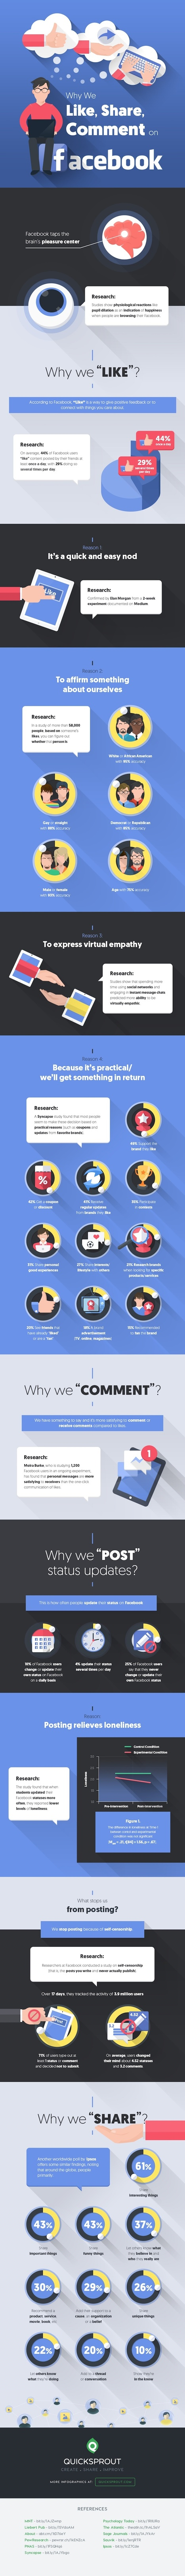 Why People Like, Share, and Comment on Facebook #Infographic | MarketingHits | Scoop.it